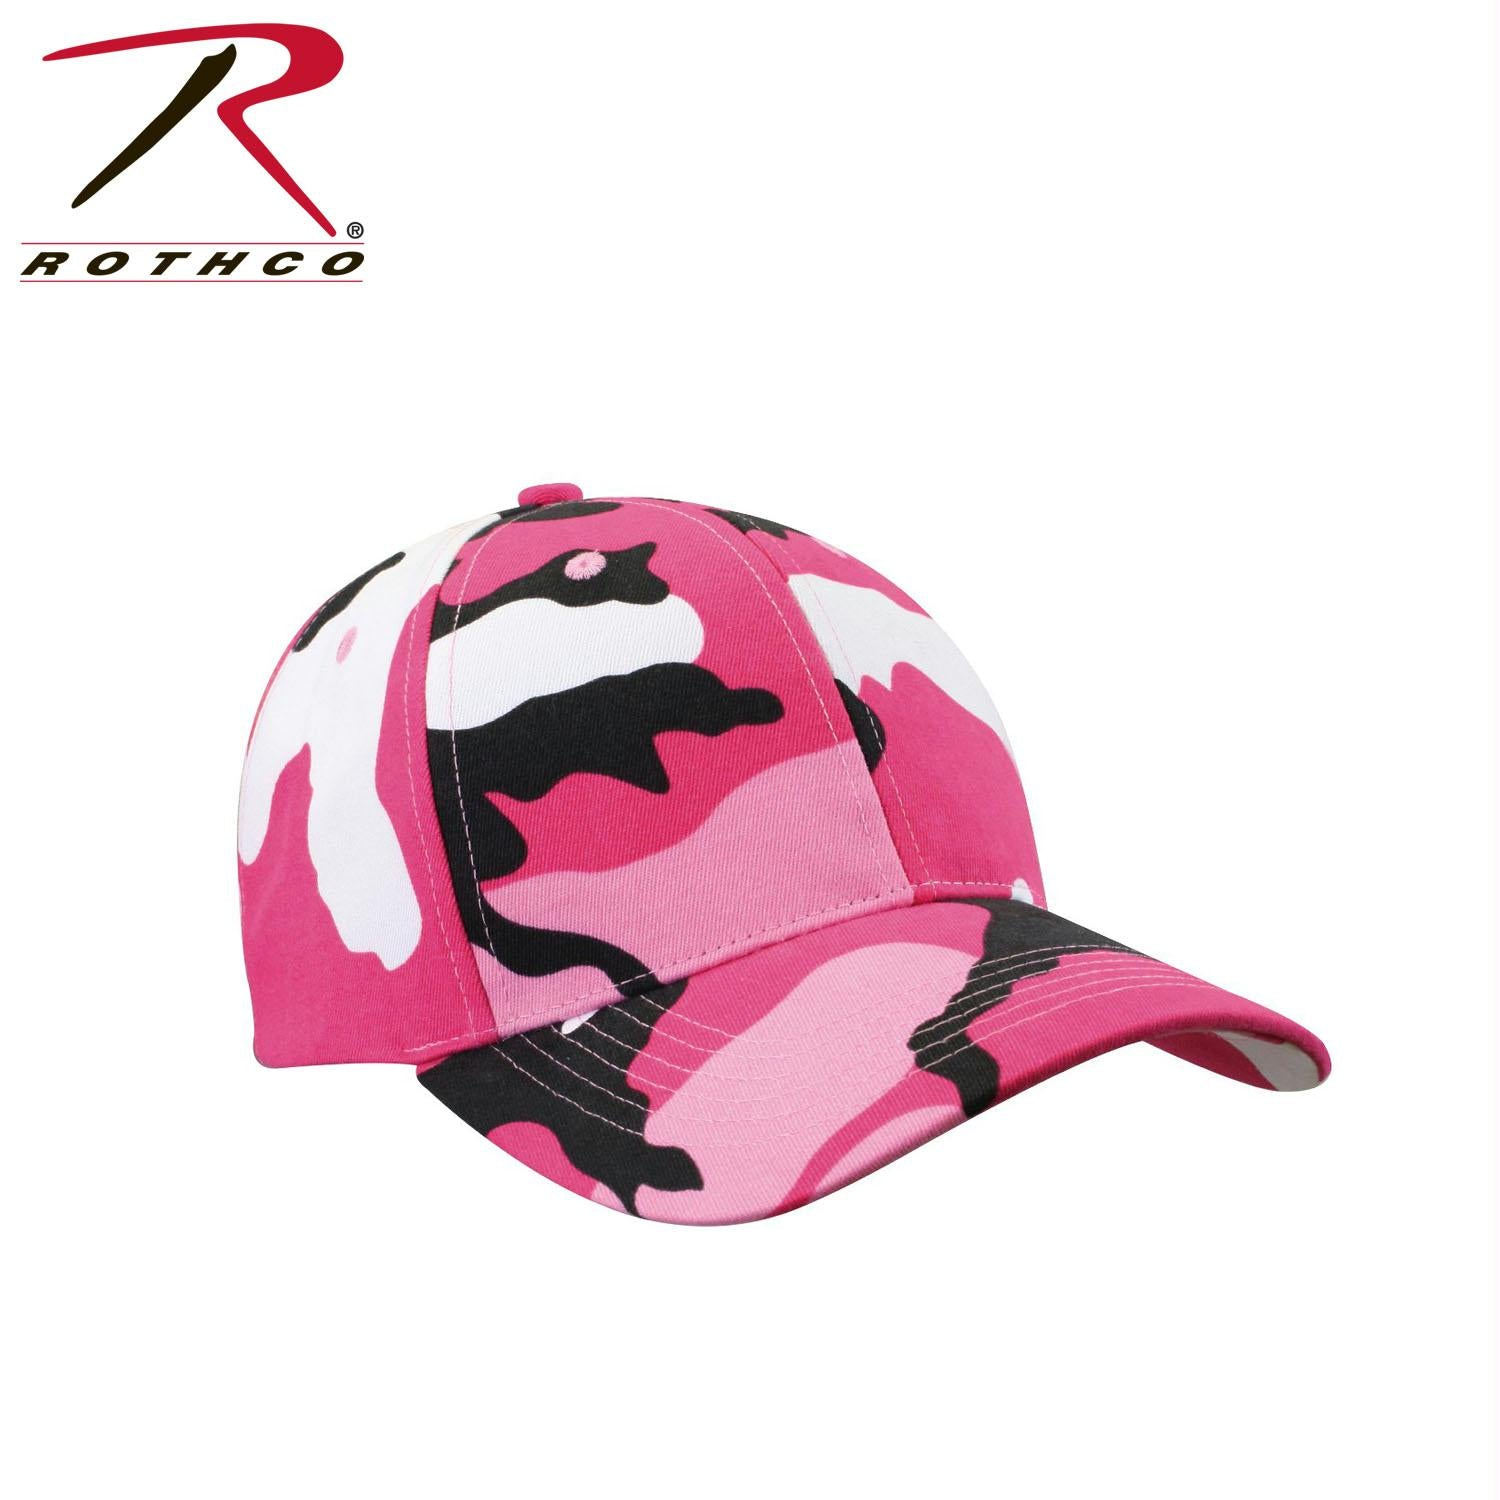 Rothco Supreme Camo Low Profile Cap - Pink Camo / One Size